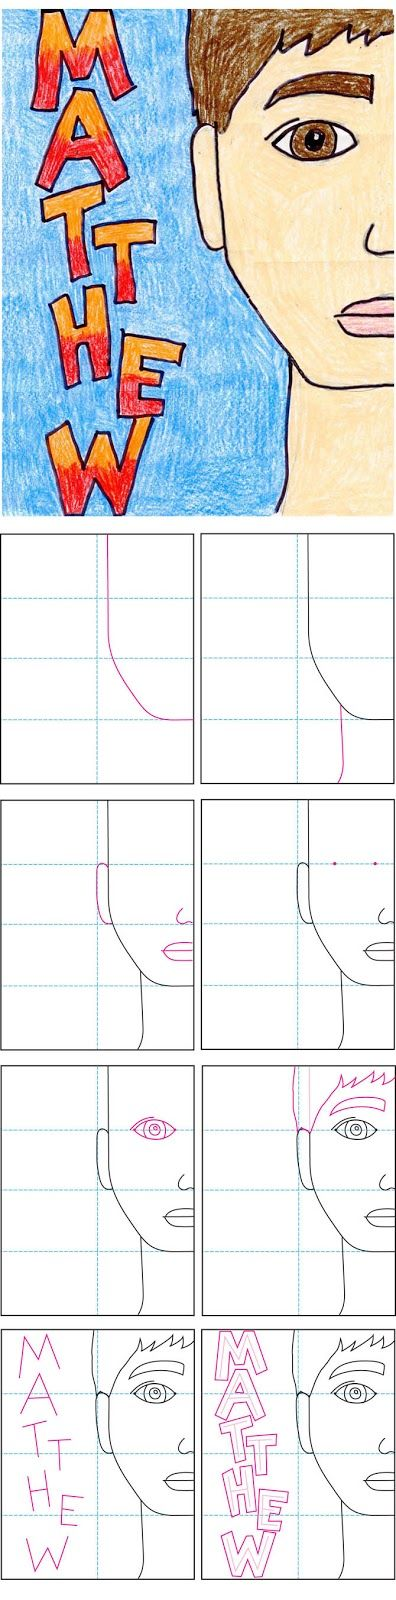 Great back to school starter project. Draw half portrait and fill in with name. Tutorial posted. #backtoschool #selfportrait